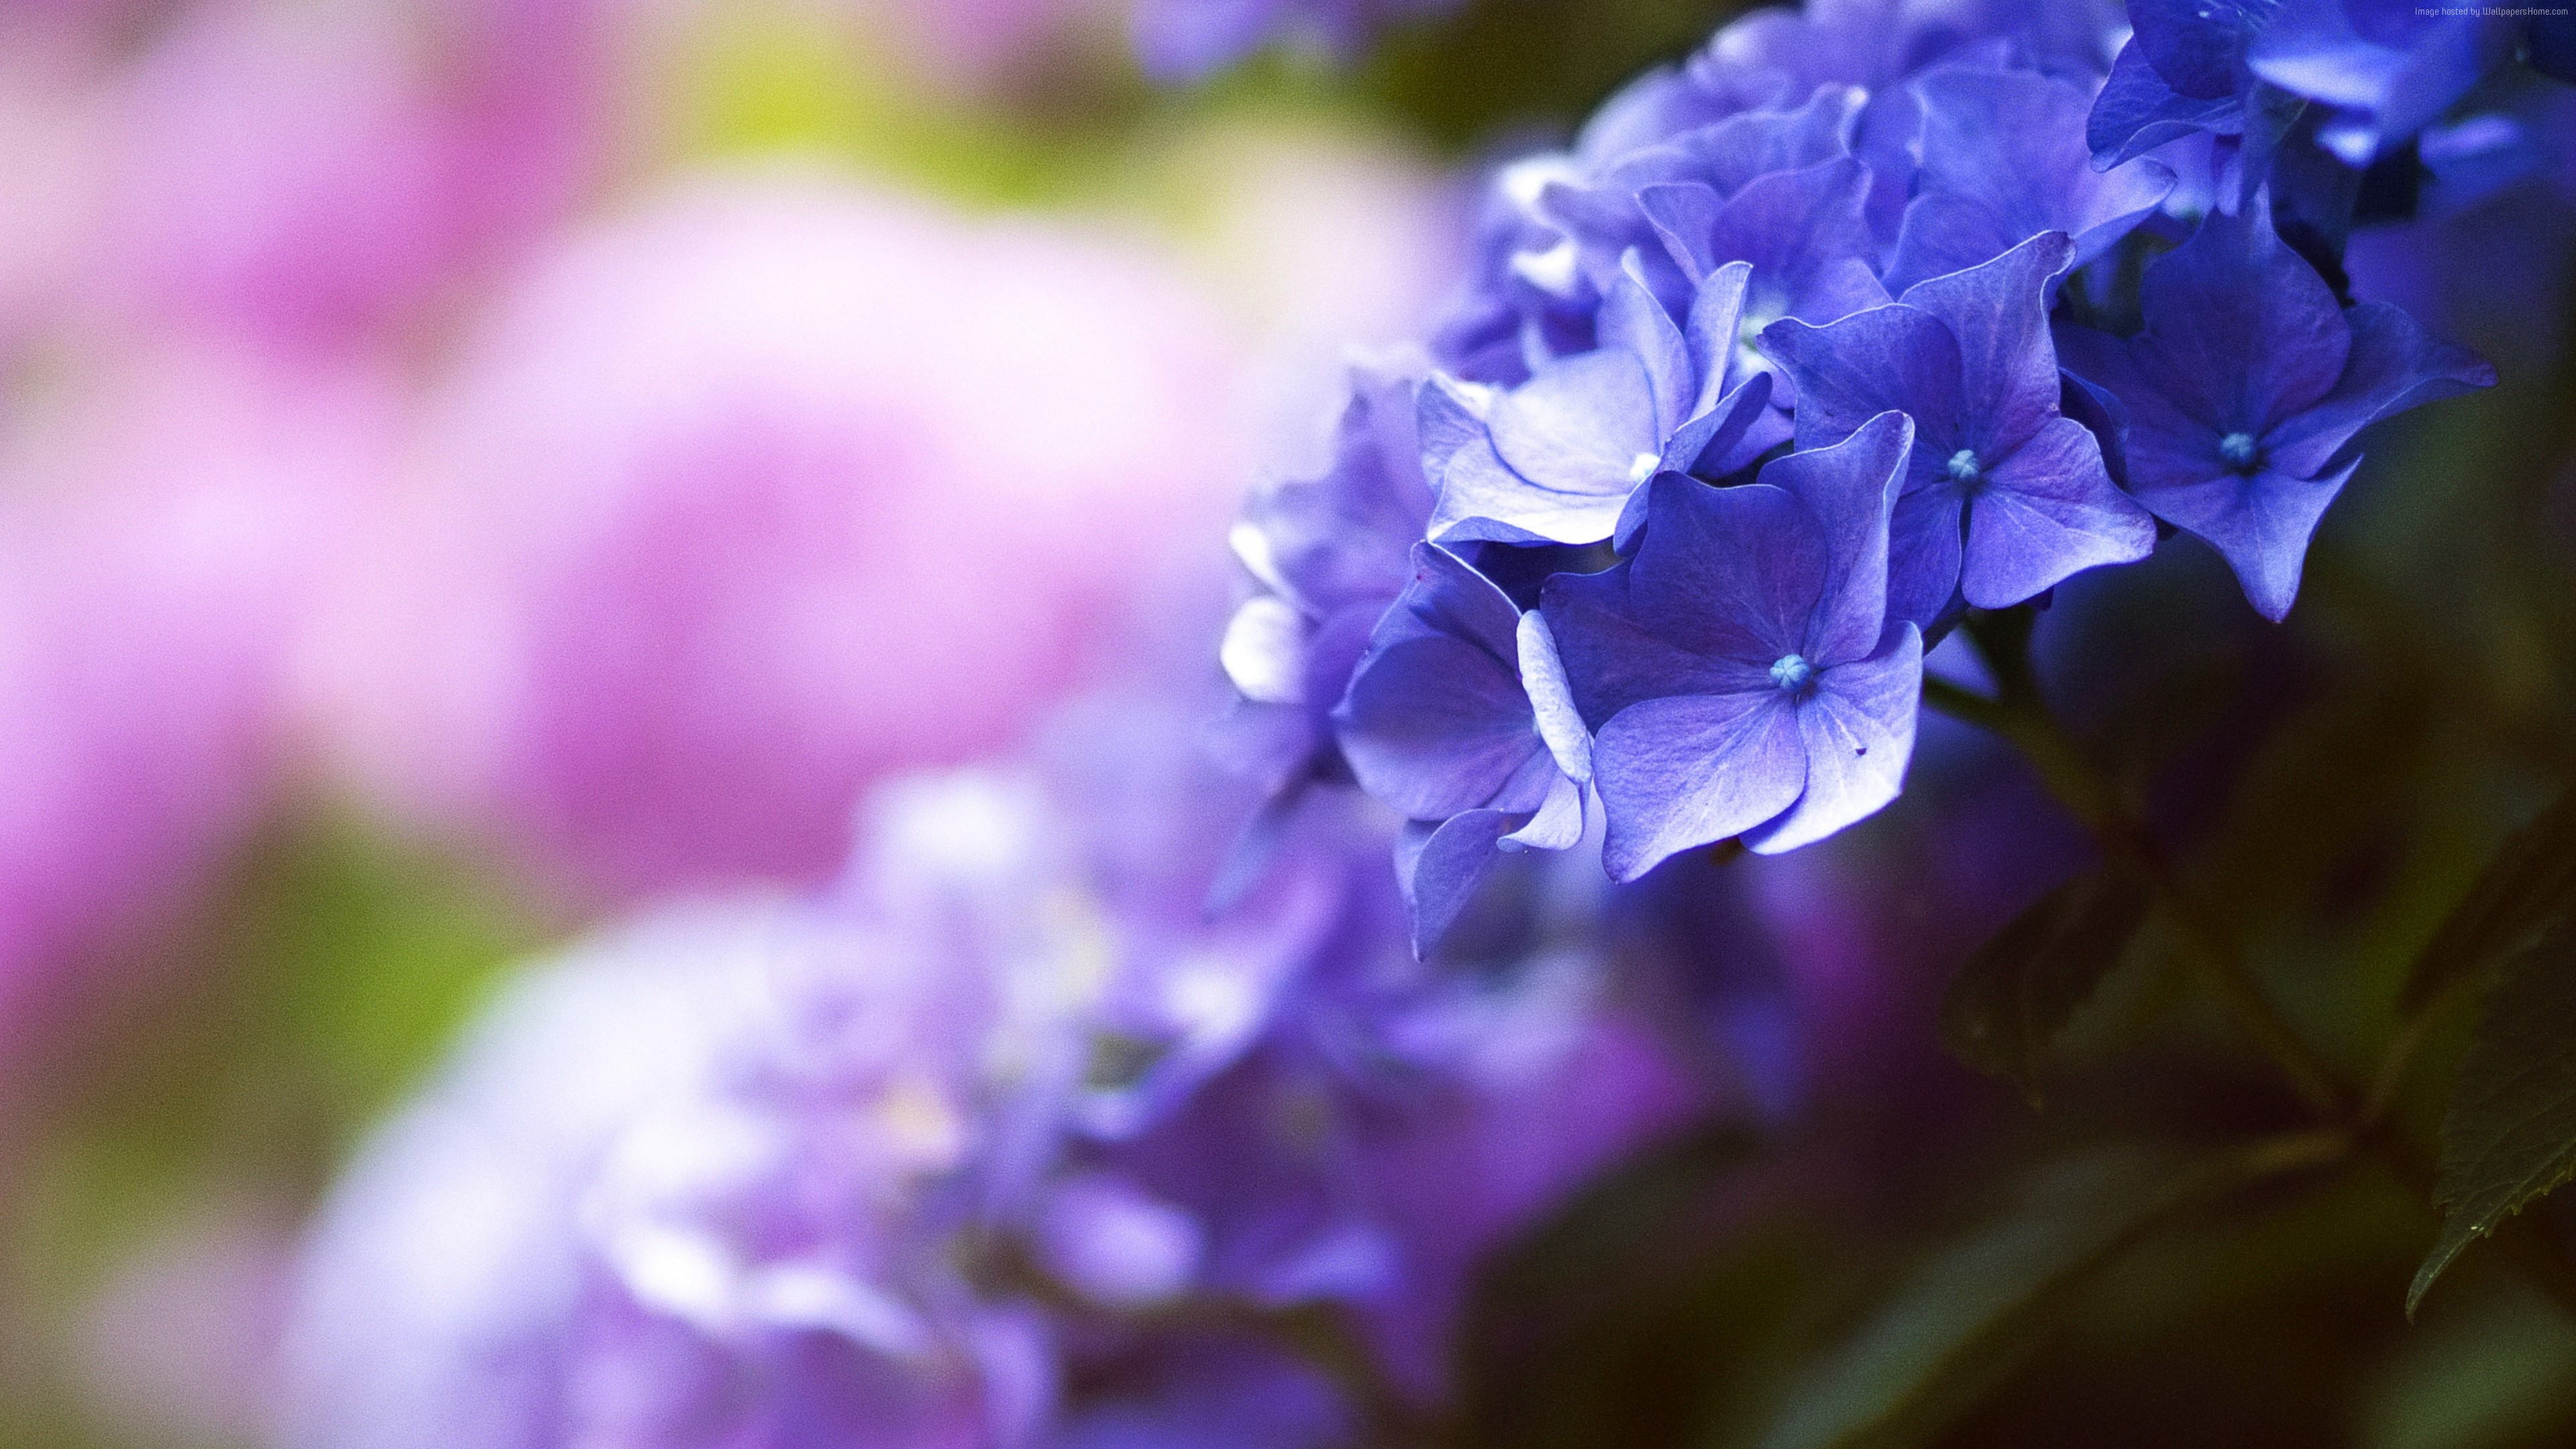 Wallpaper Beautiful Flowers 5k 4k Wallpaper Blue Spring Macro Nature Wallpaper Download High Resolution 4k Wallpaper